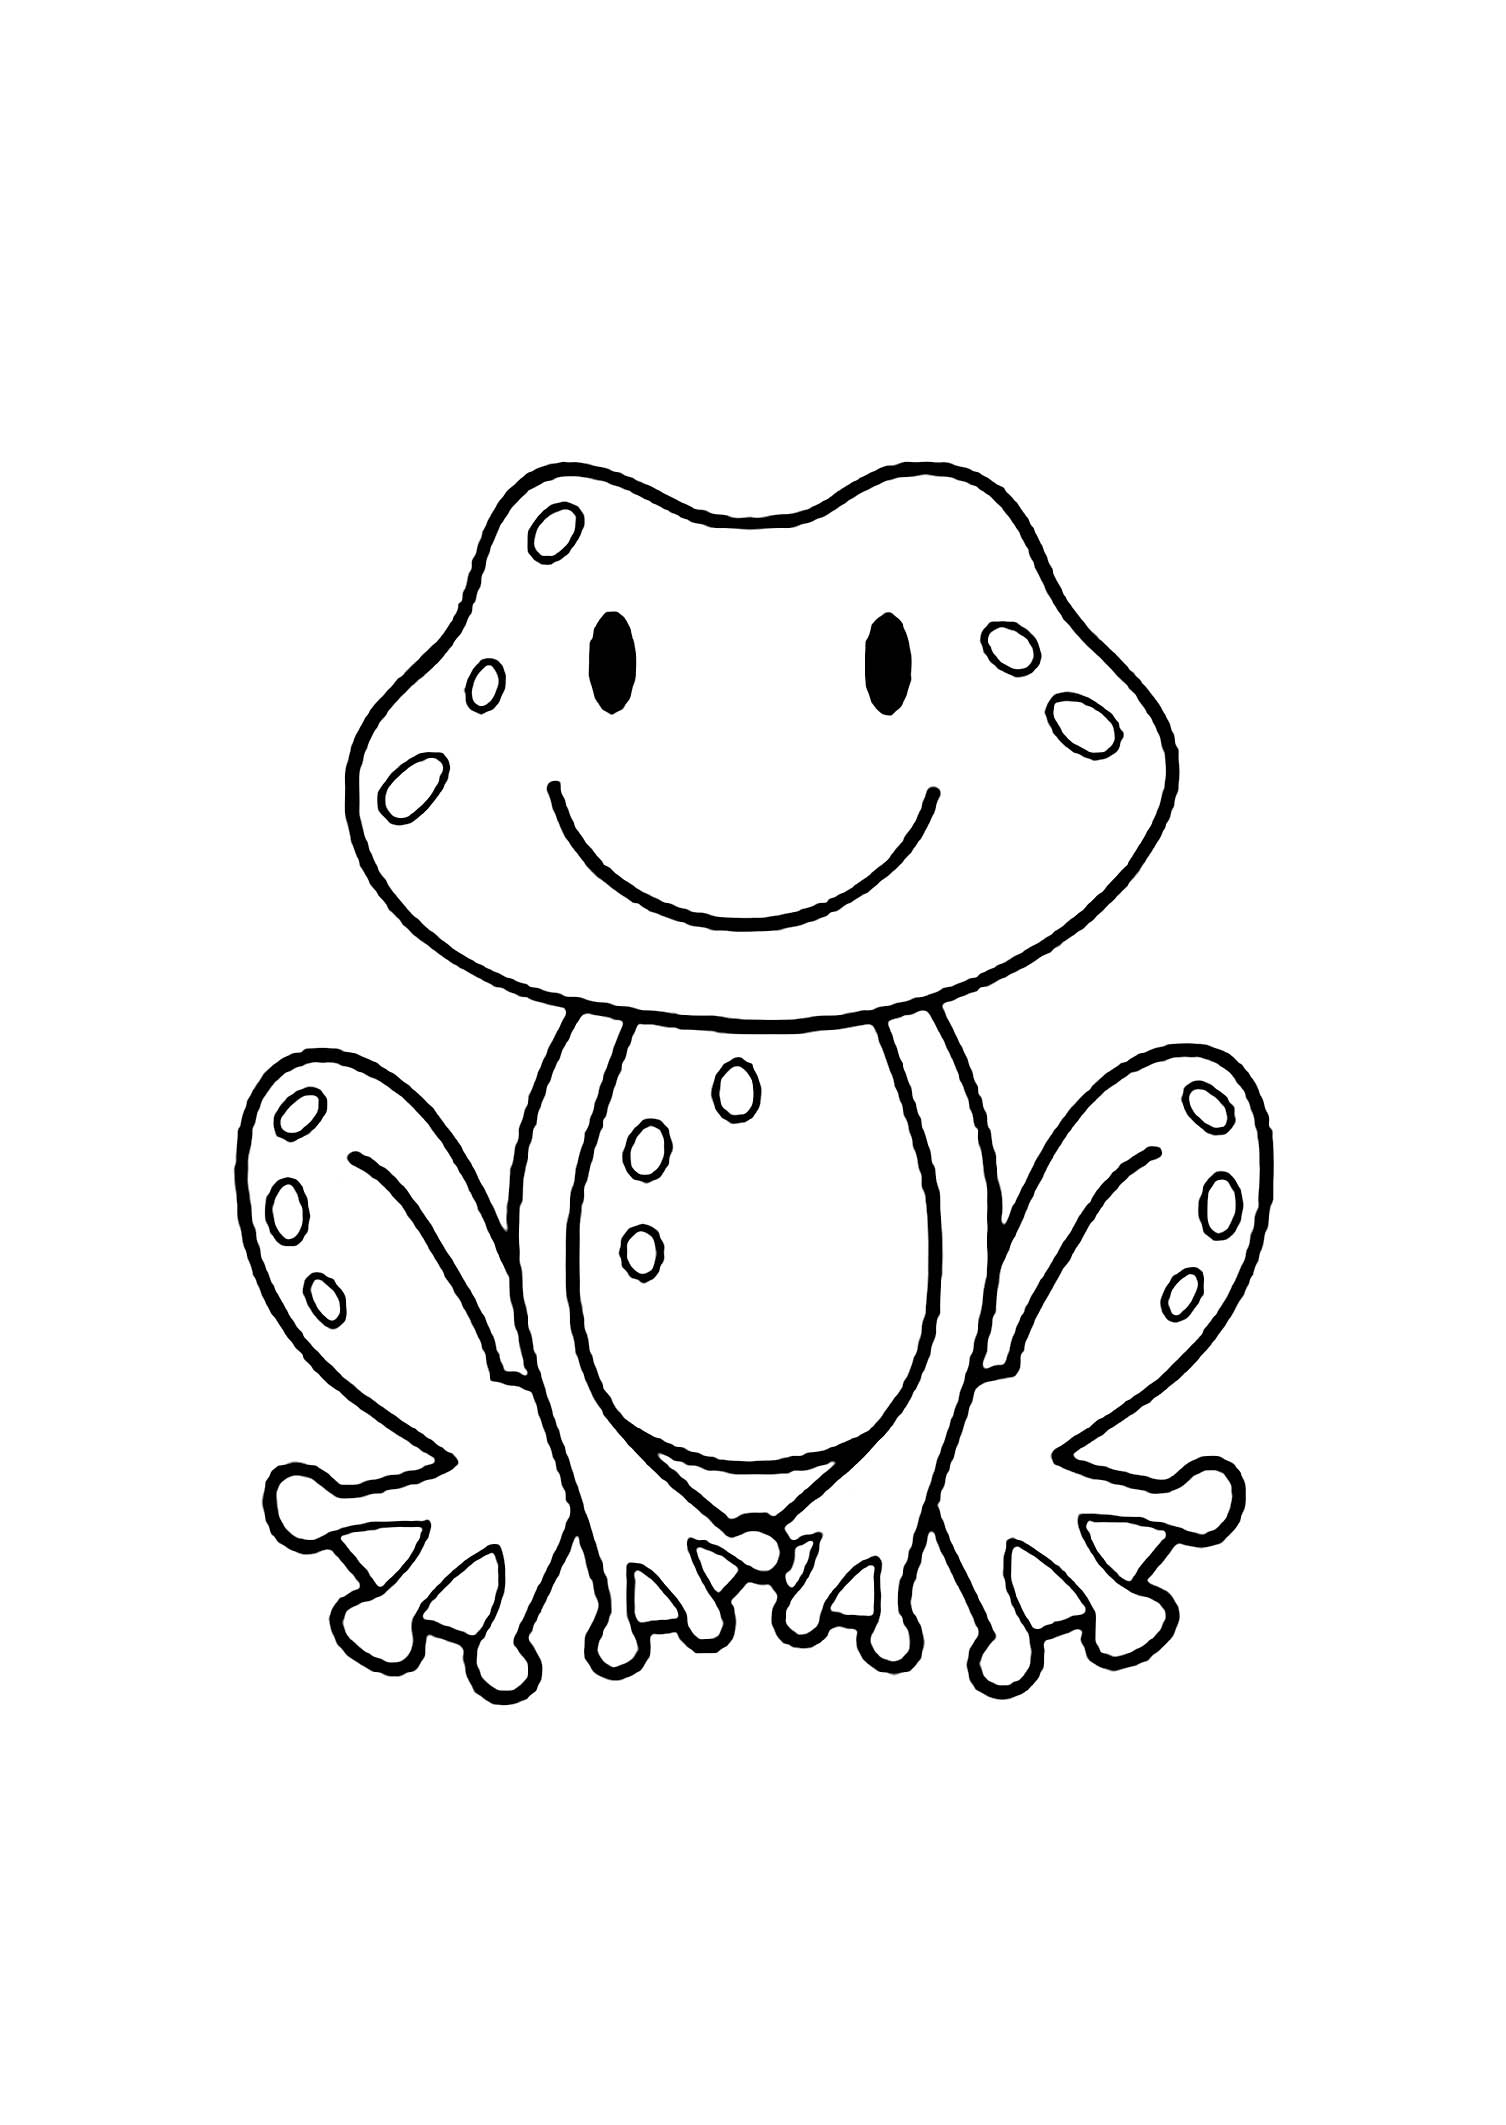 frogs to color for free free printable frog coloring pages for kids cool2bkids for free to frogs color